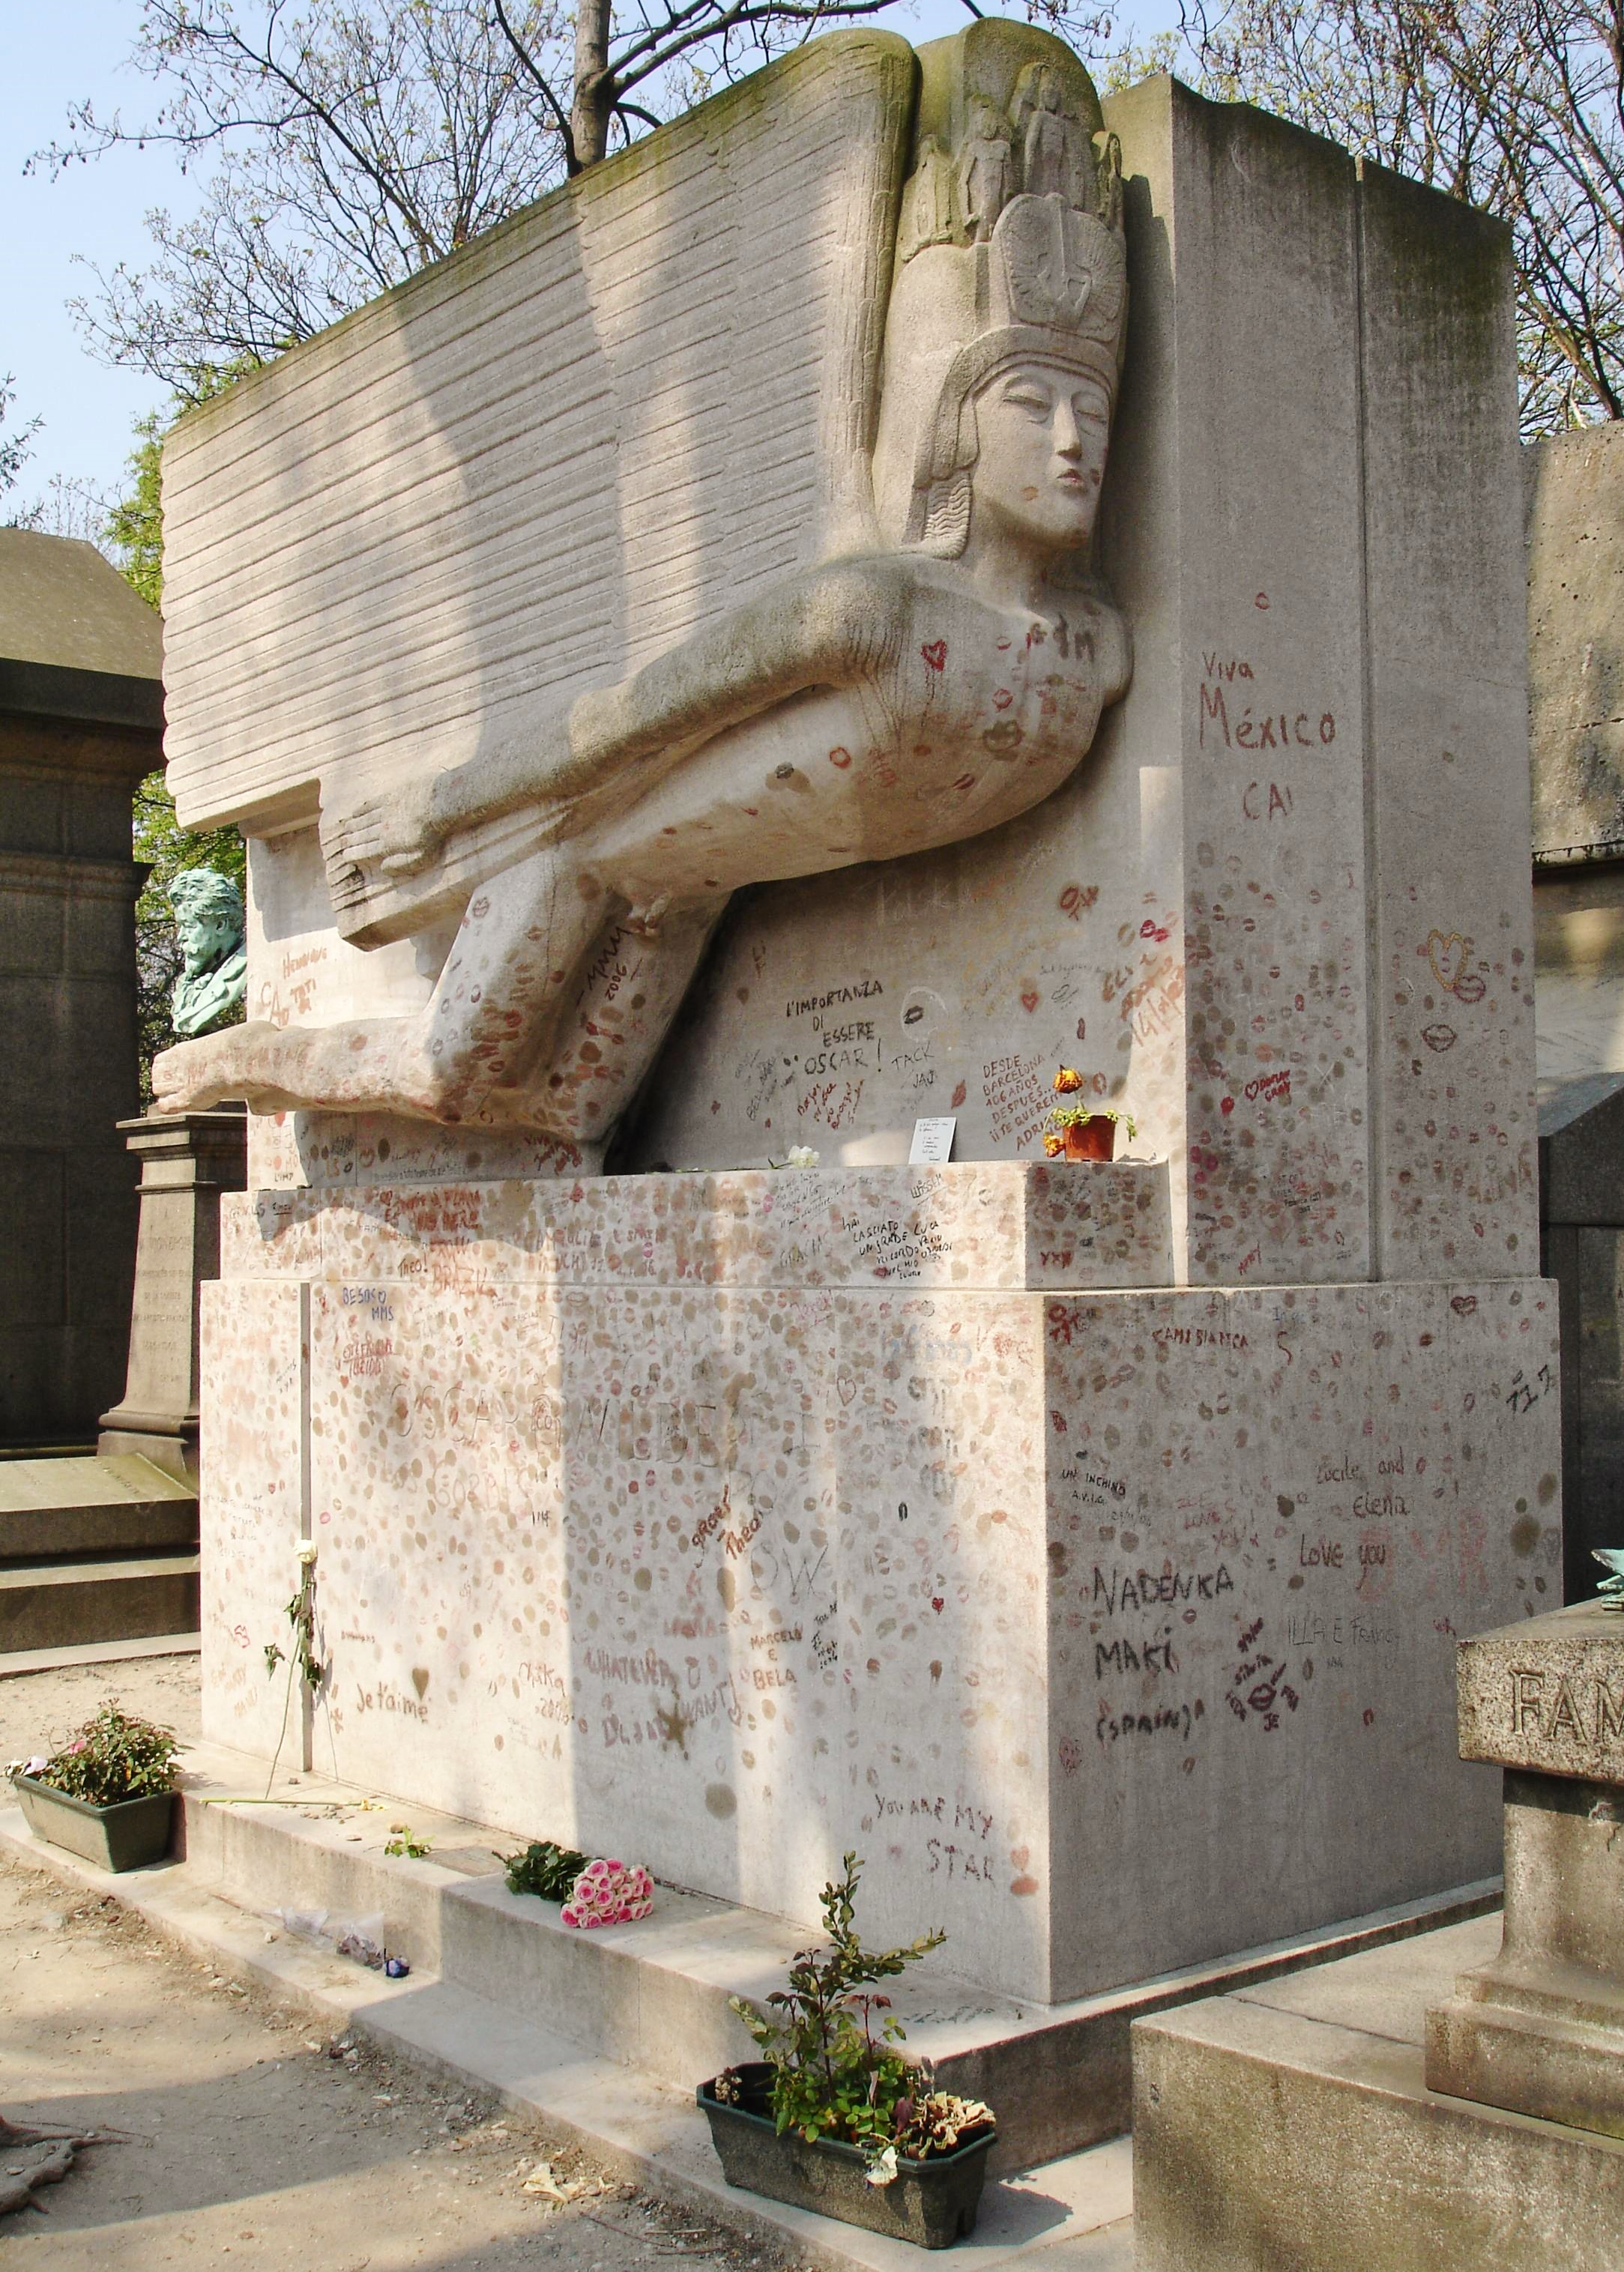 Oscar Wilde's tomb at the Père Lachaise Cemetery in Paris